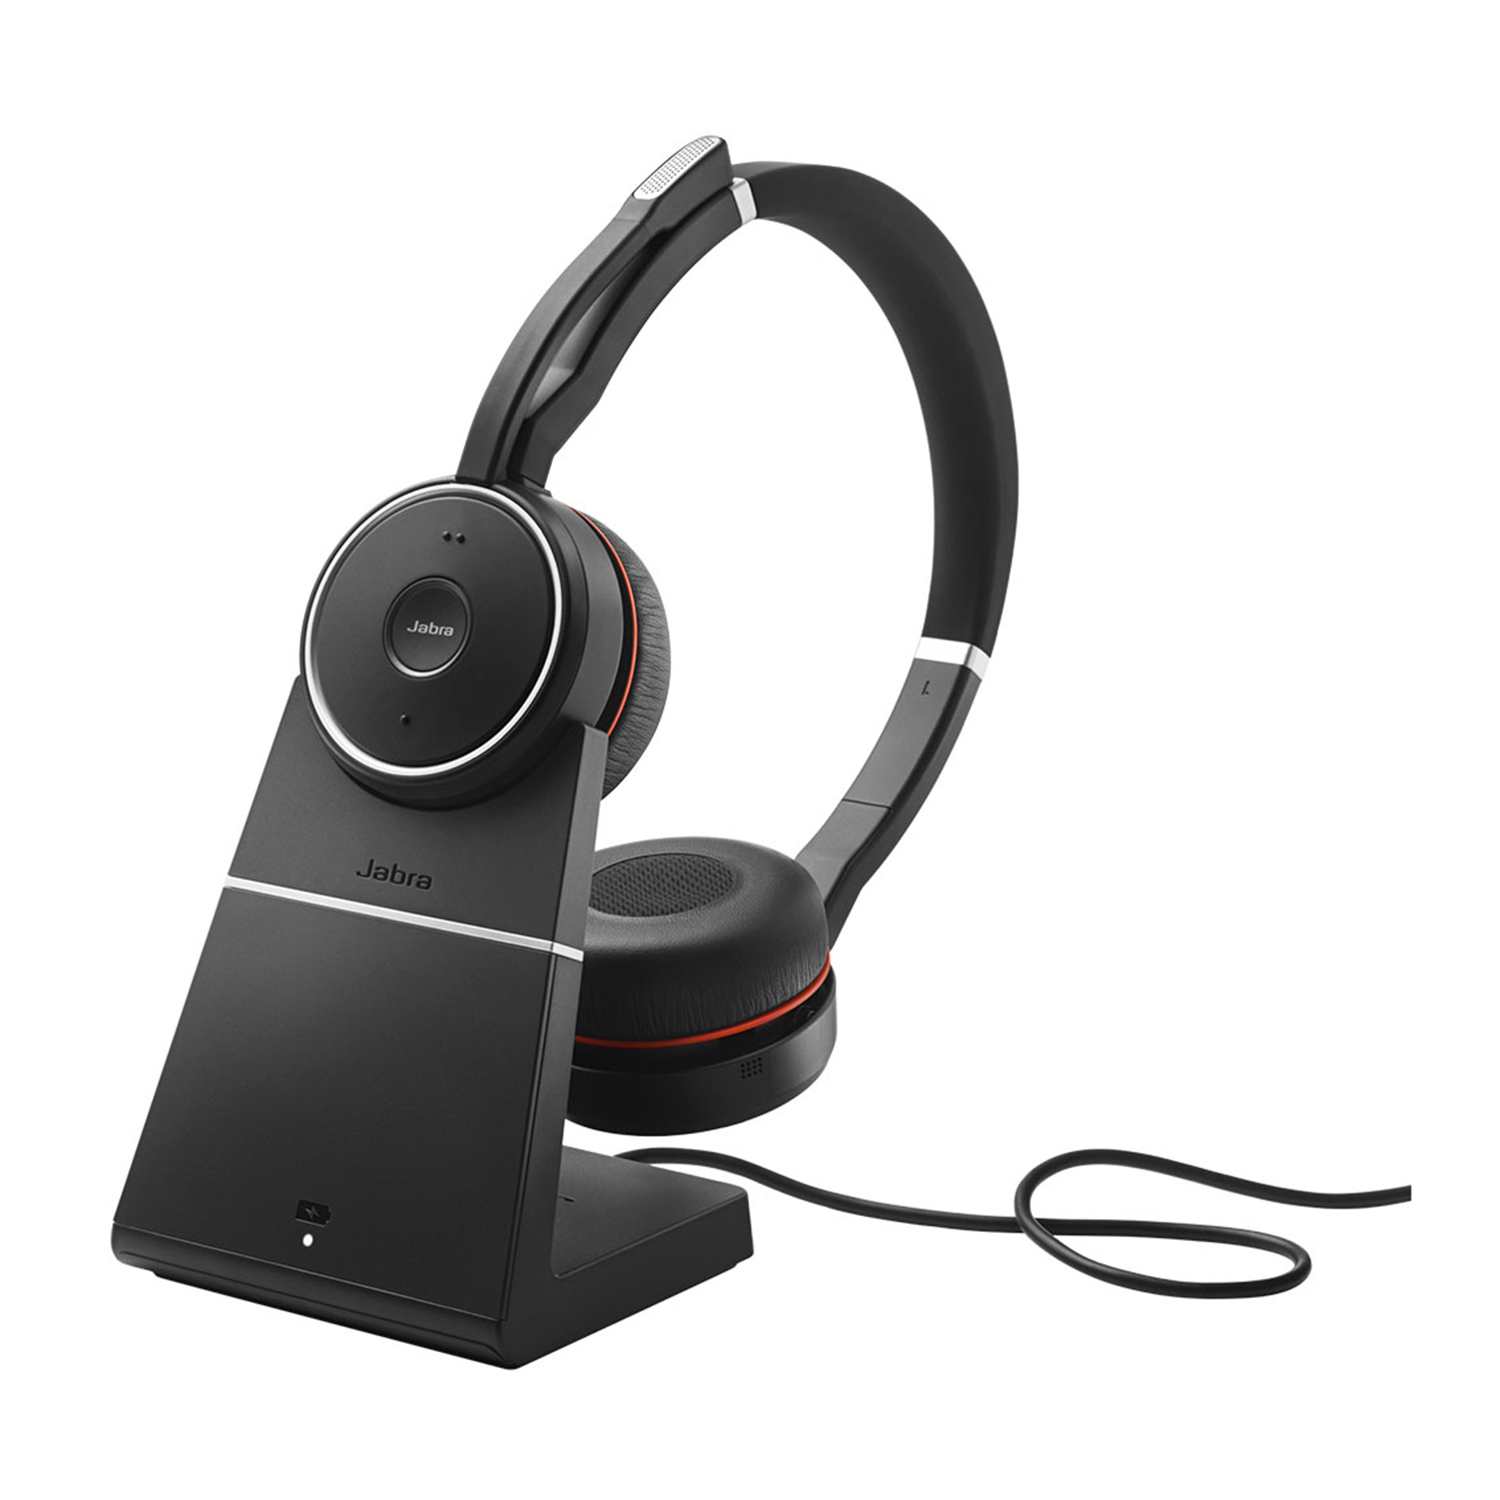 Jabra Evolve 75 Duo USB and Bluetooth Wireless UC Headset With Charging Stand